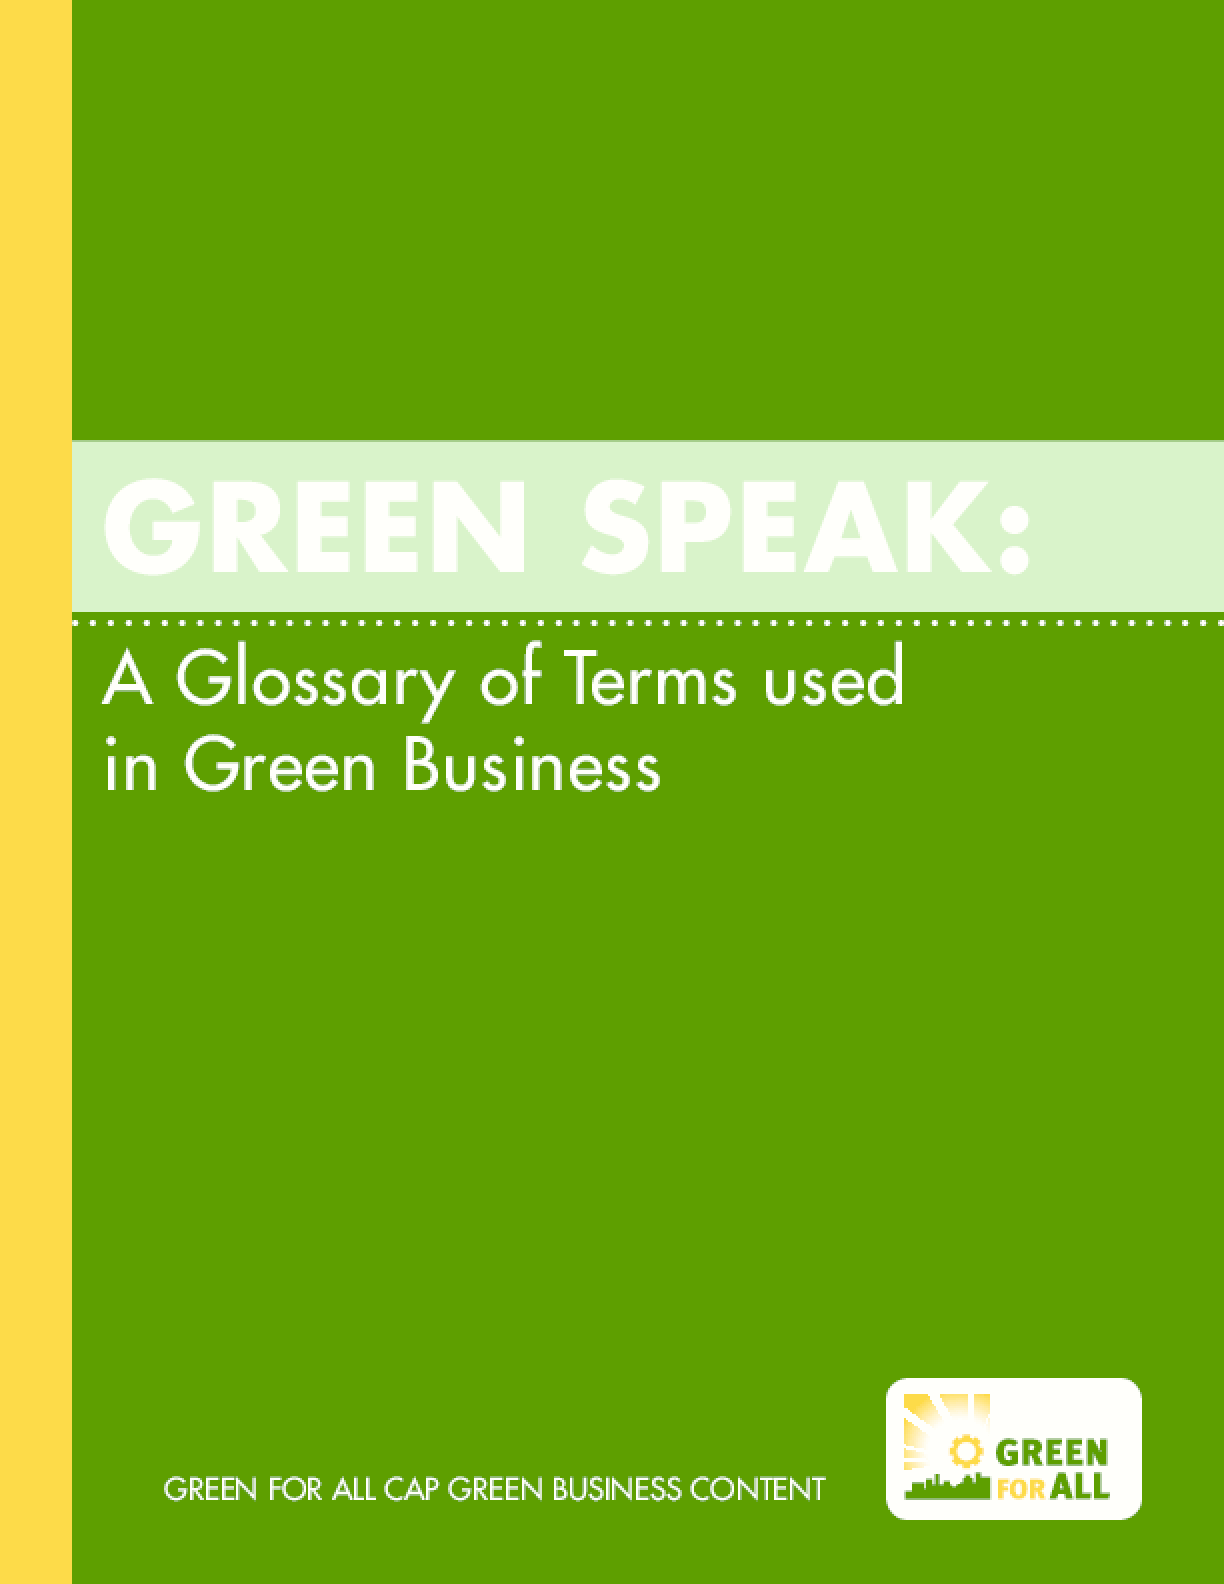 Green Speak: A Glossary of Terms used in Green Business